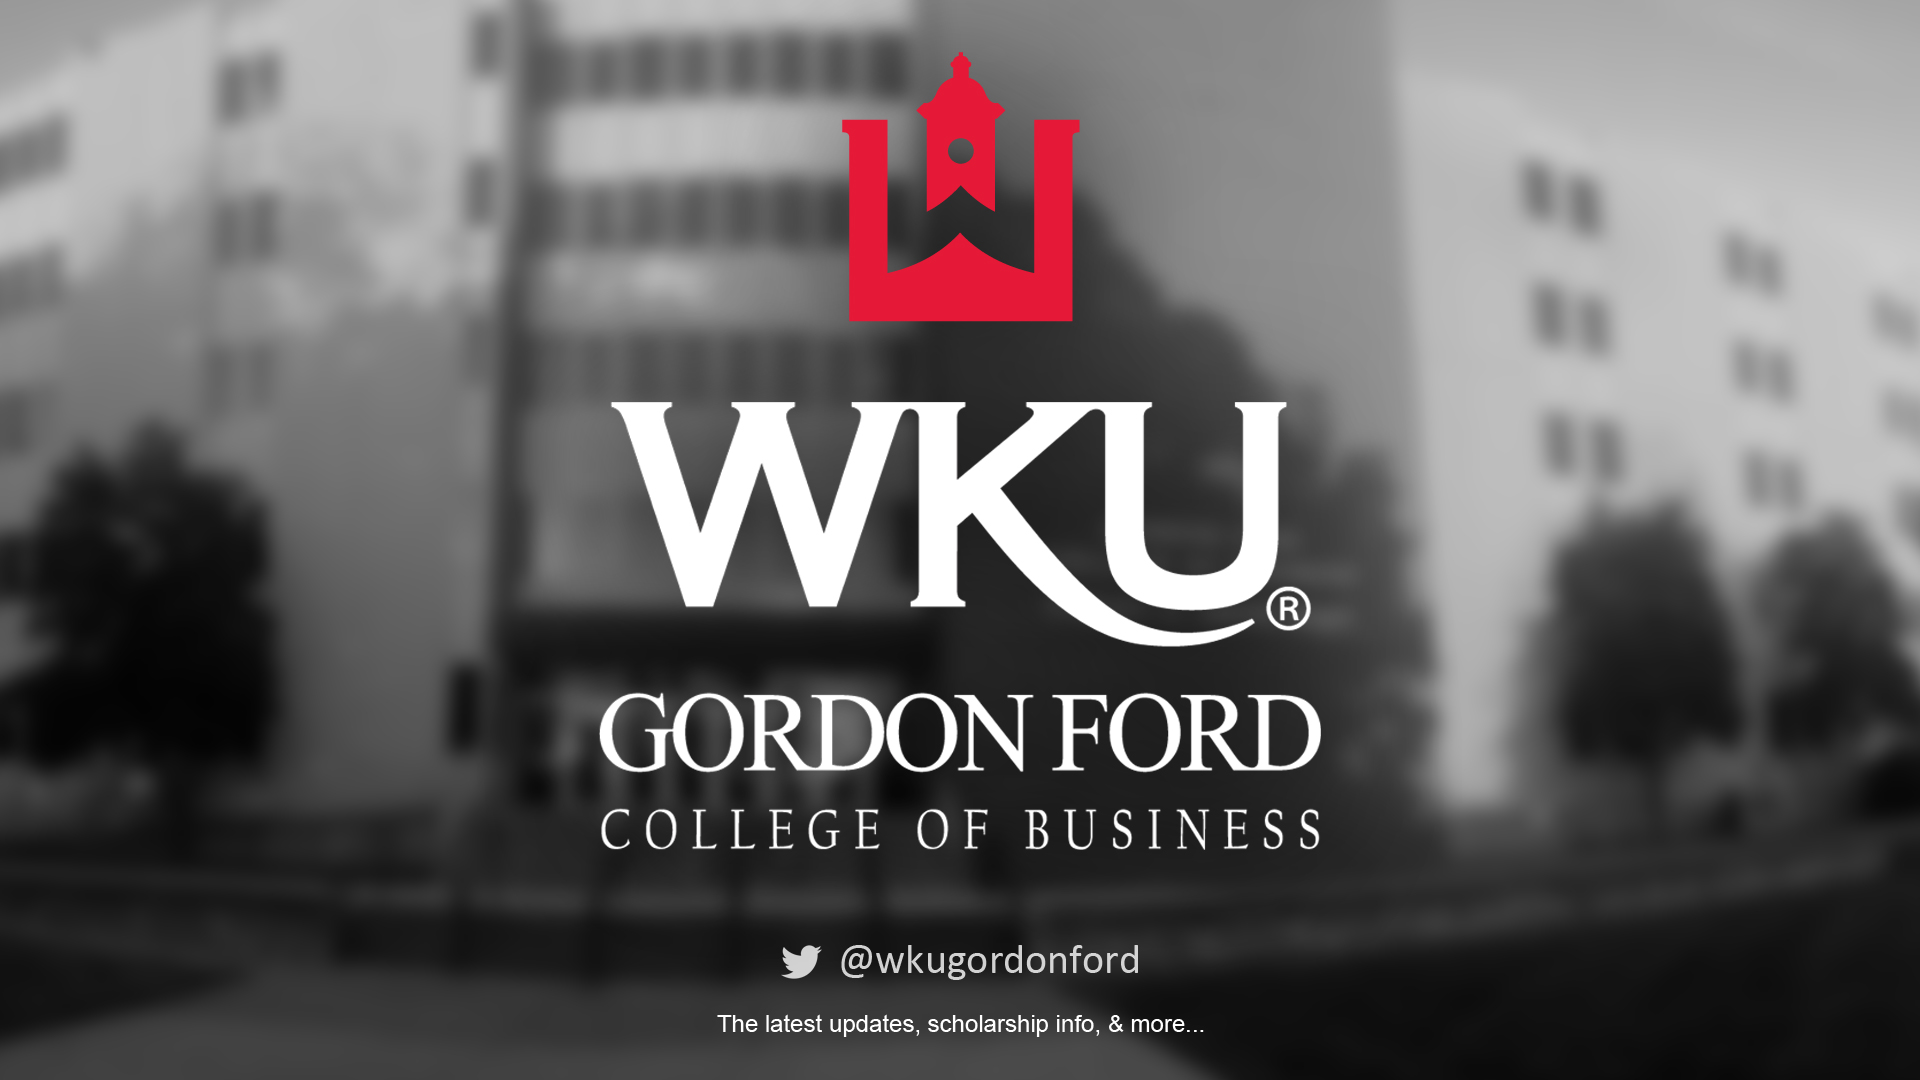 Gordon Ford College of Business